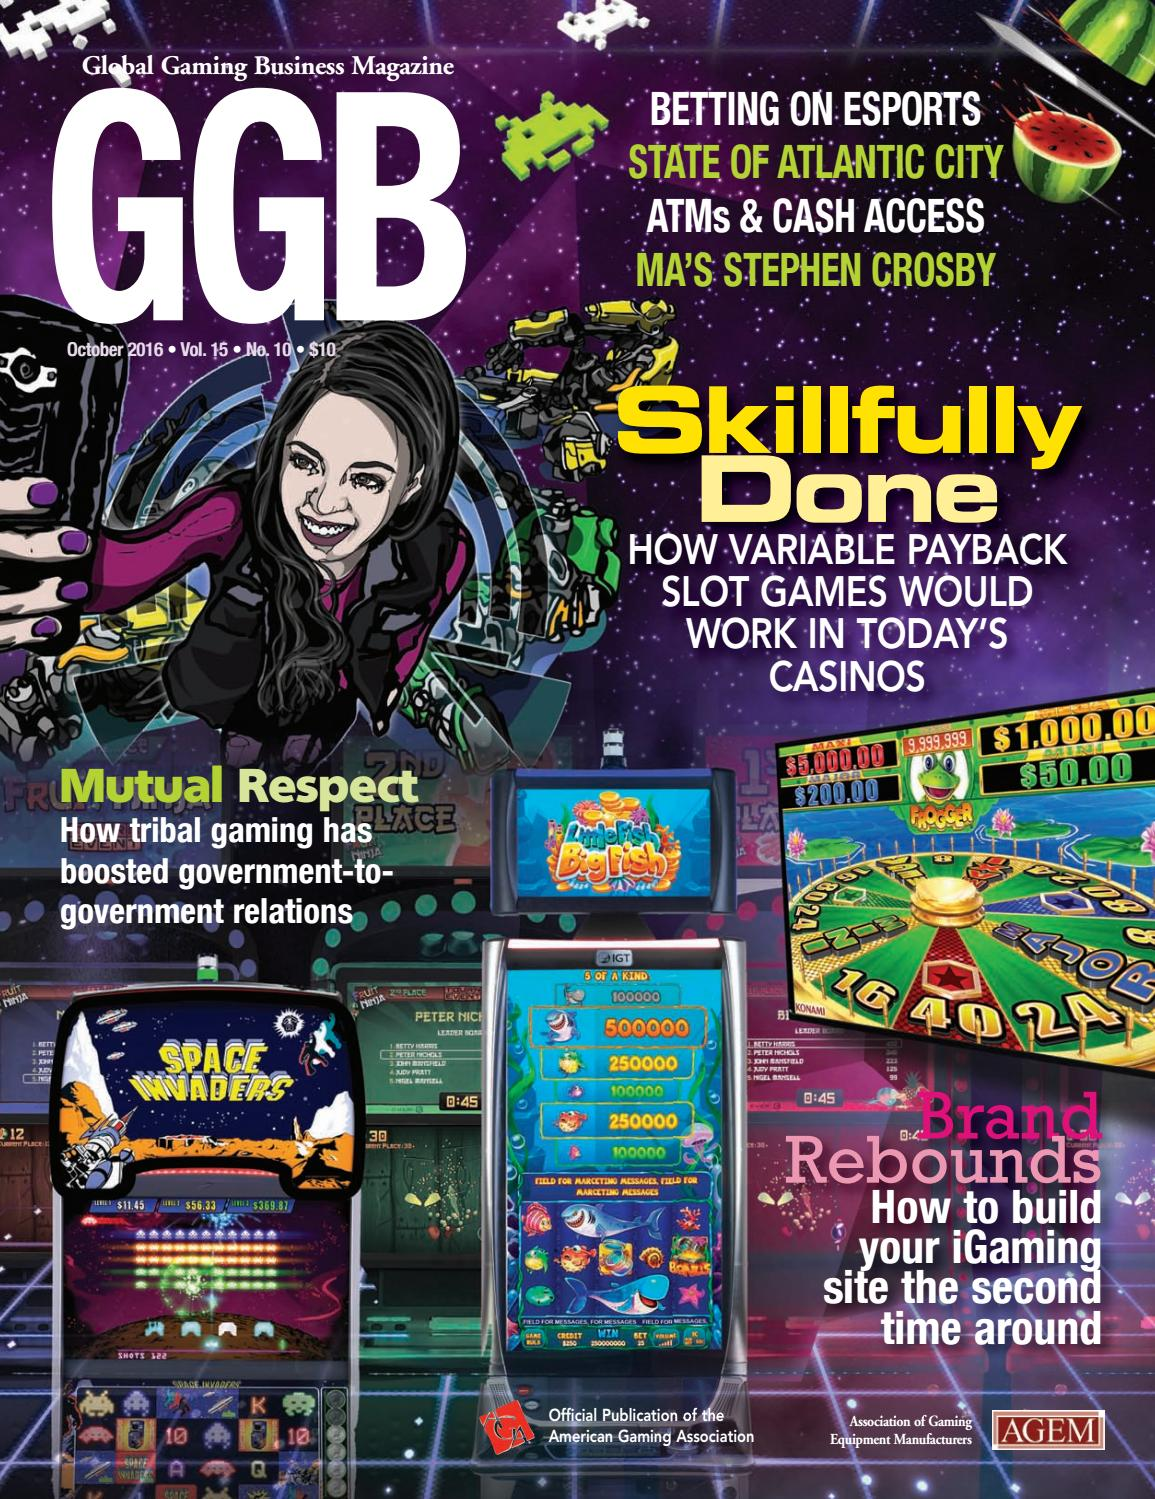 Short Circuit Slot Machine Williams Wms Machines Reel Gambling Global Gaming Business October 2016 By Issuu